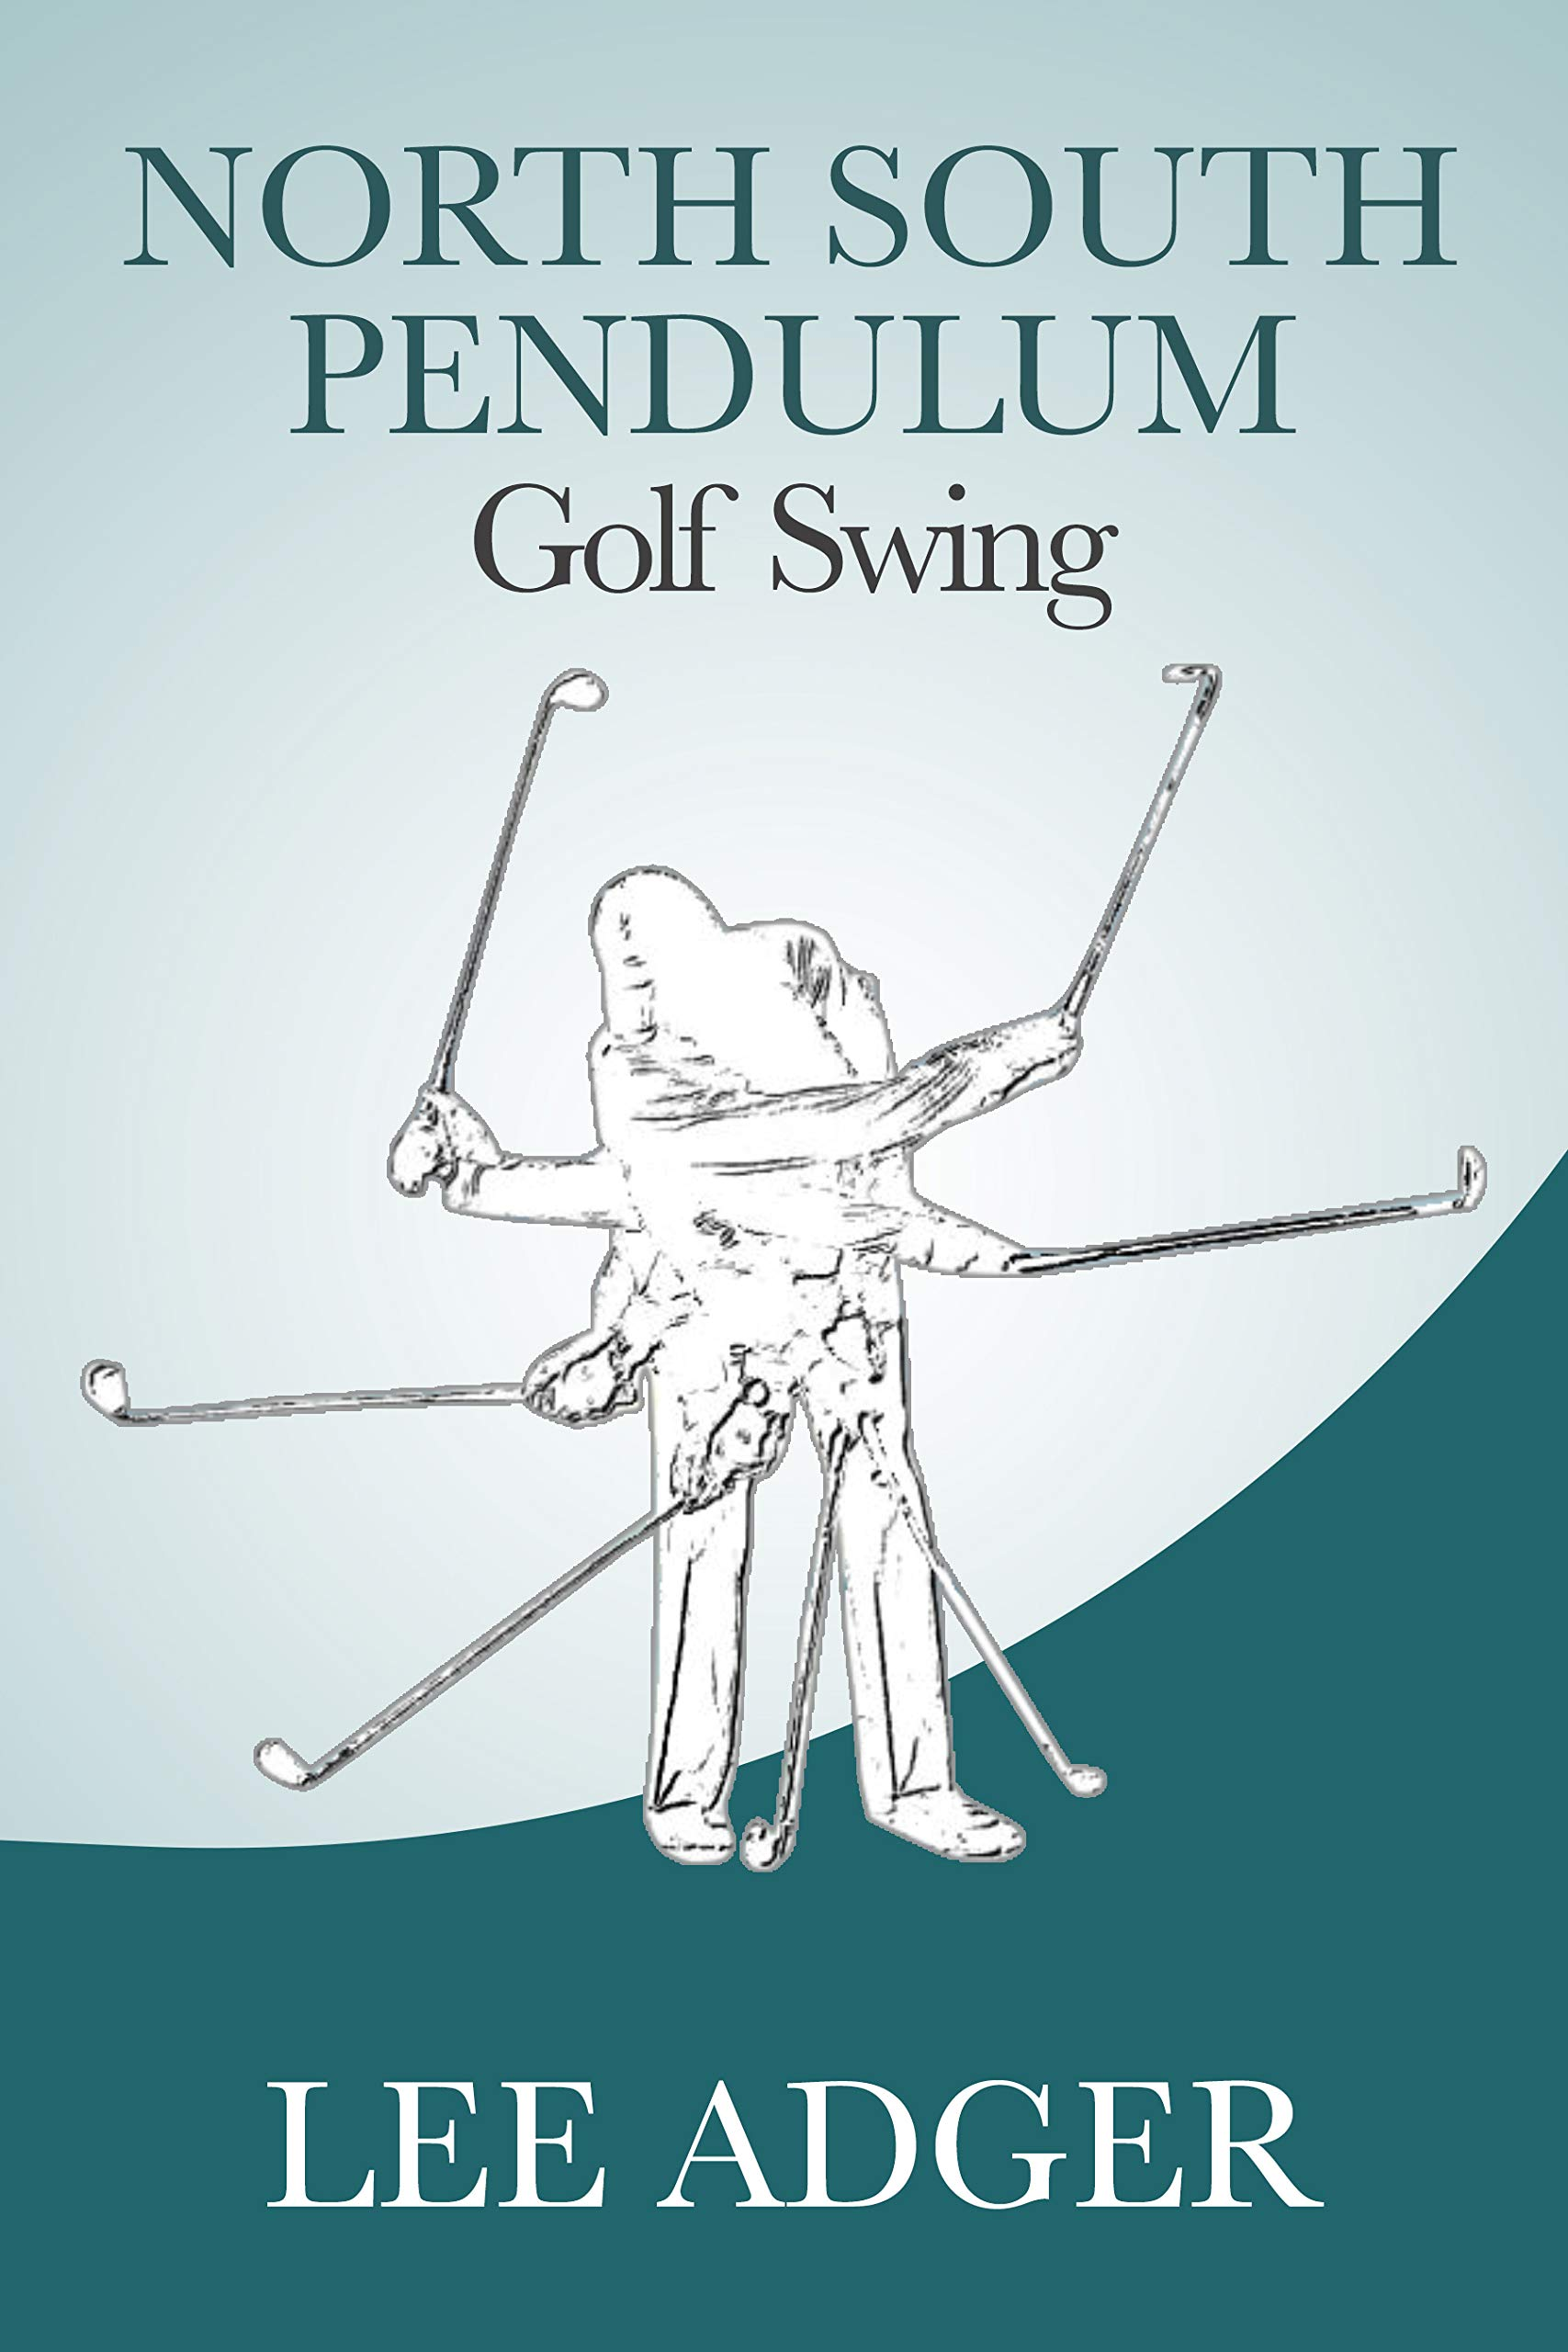 Image OfNorth-South Pendulum Golf Swing (English Edition)